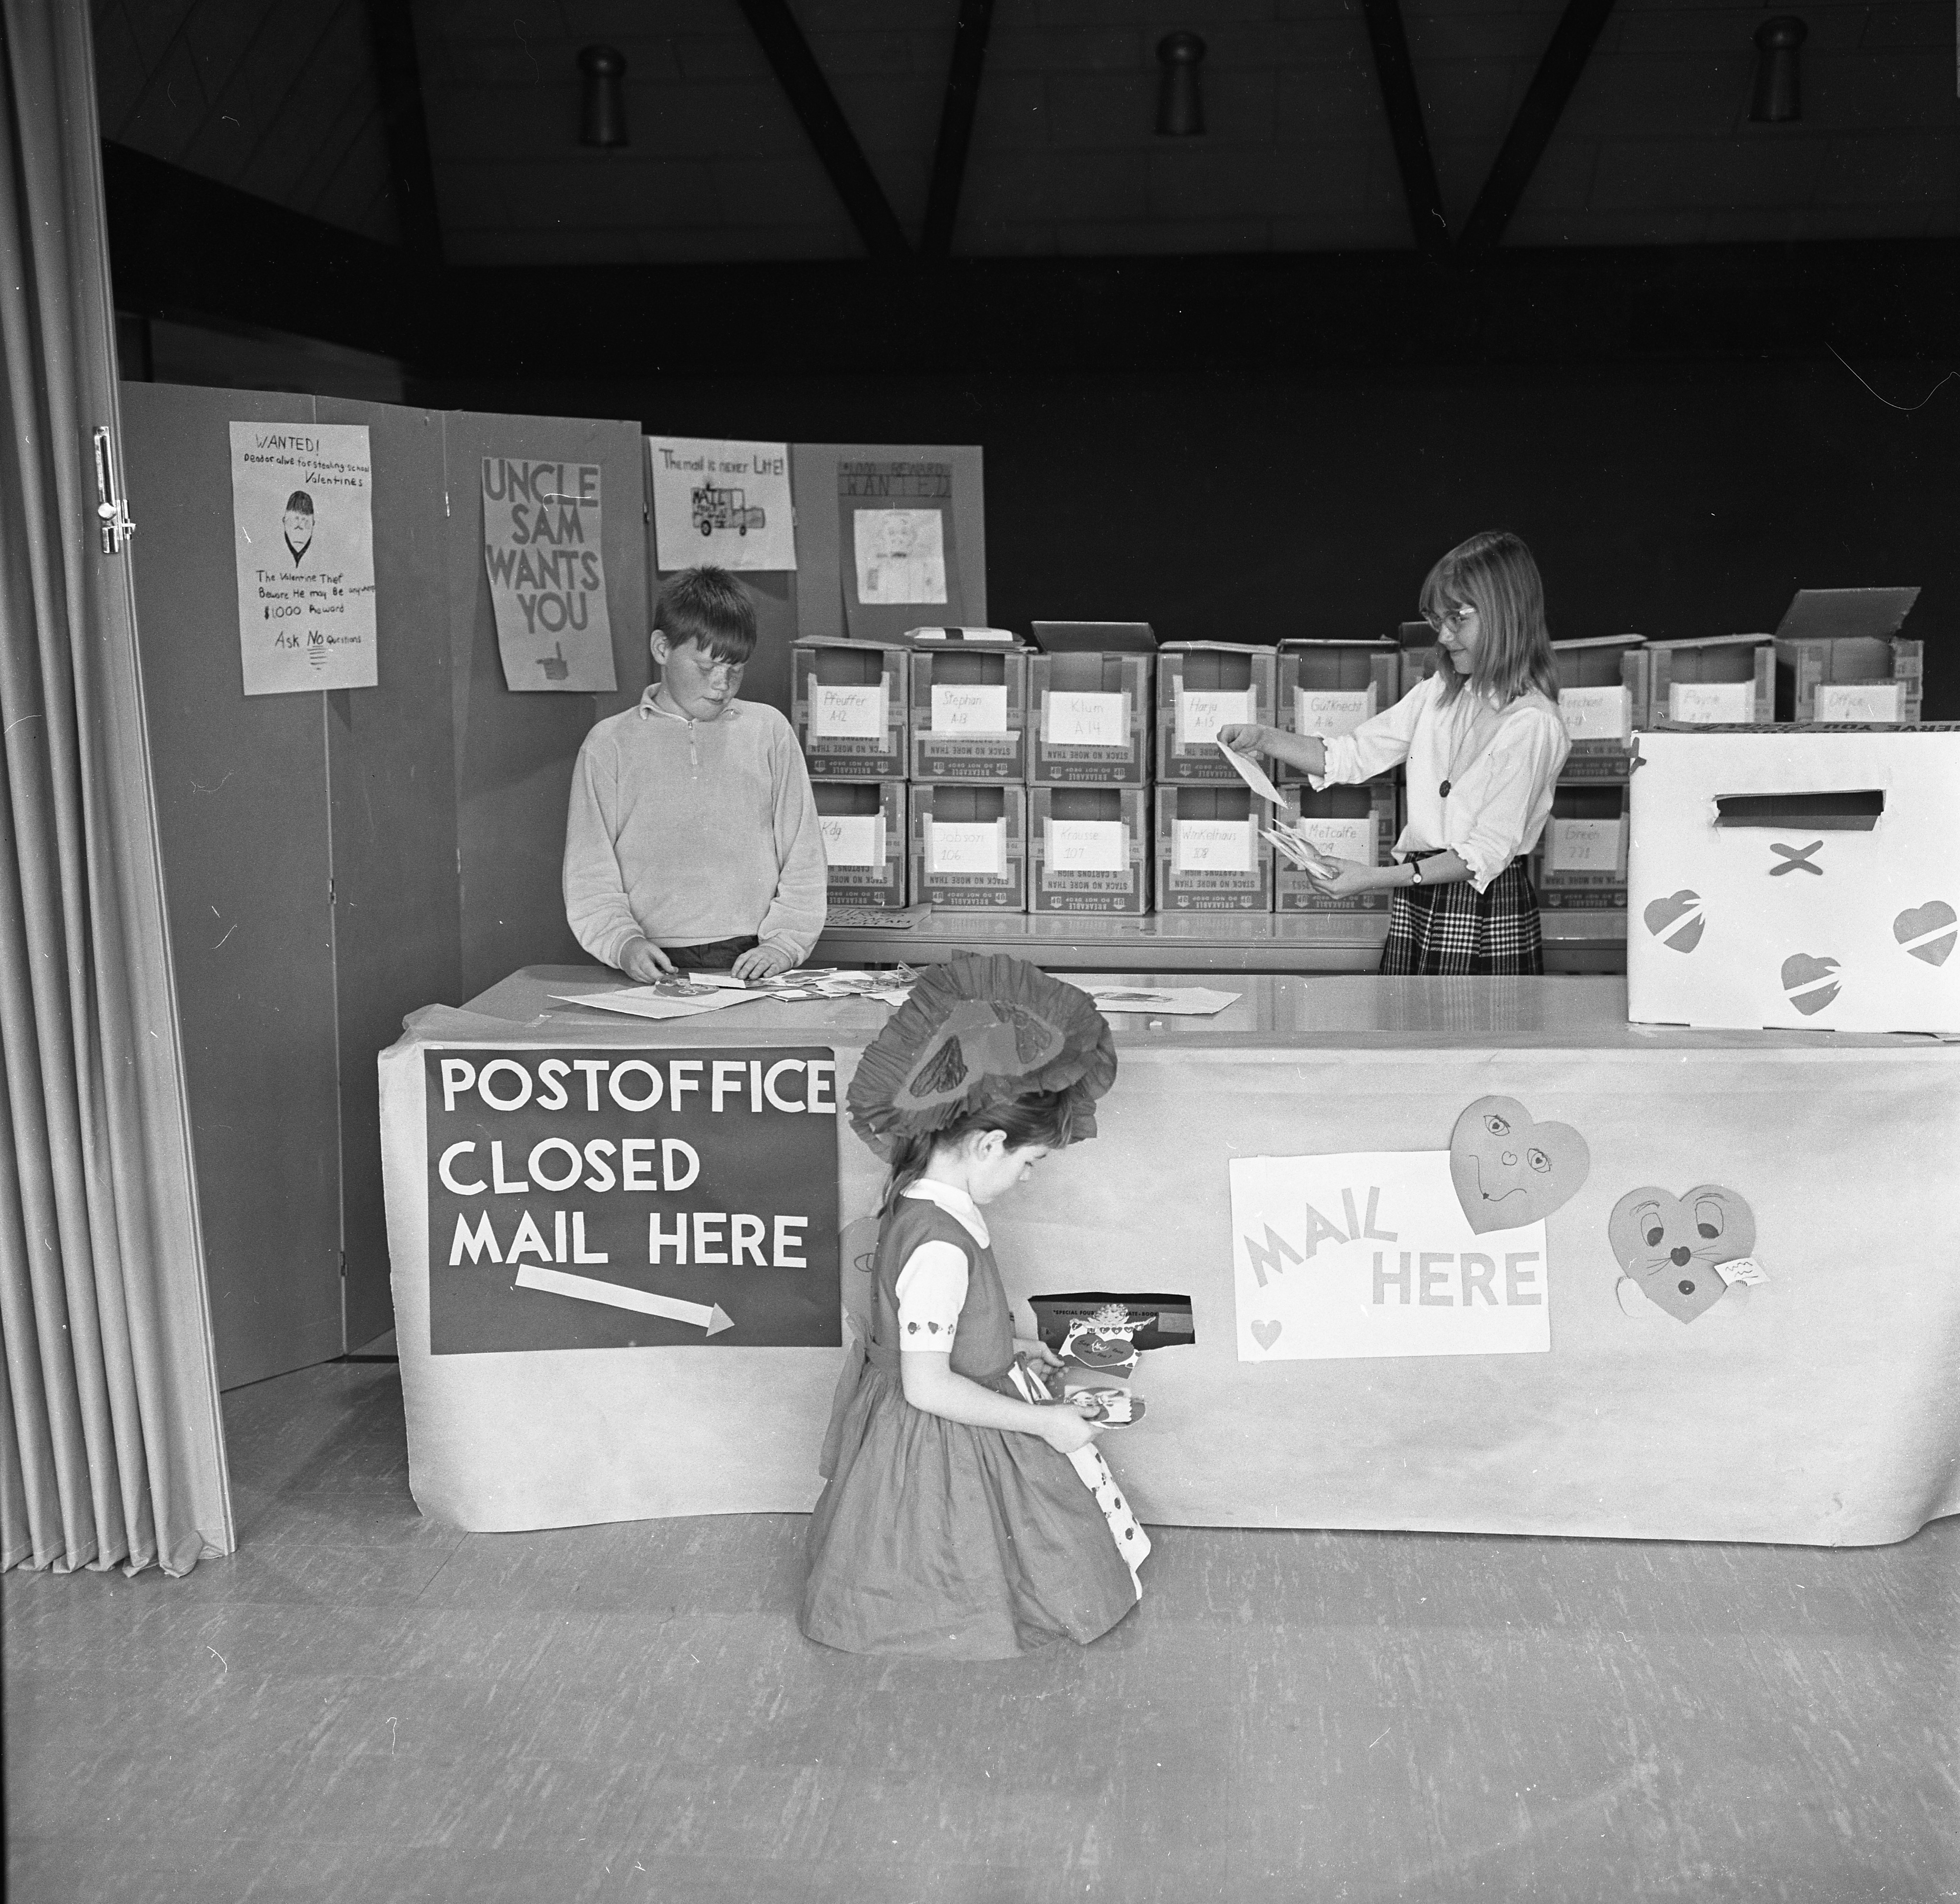 Students At Allen Elementary School With Their Valentine's Day Post Office, February 1966 image